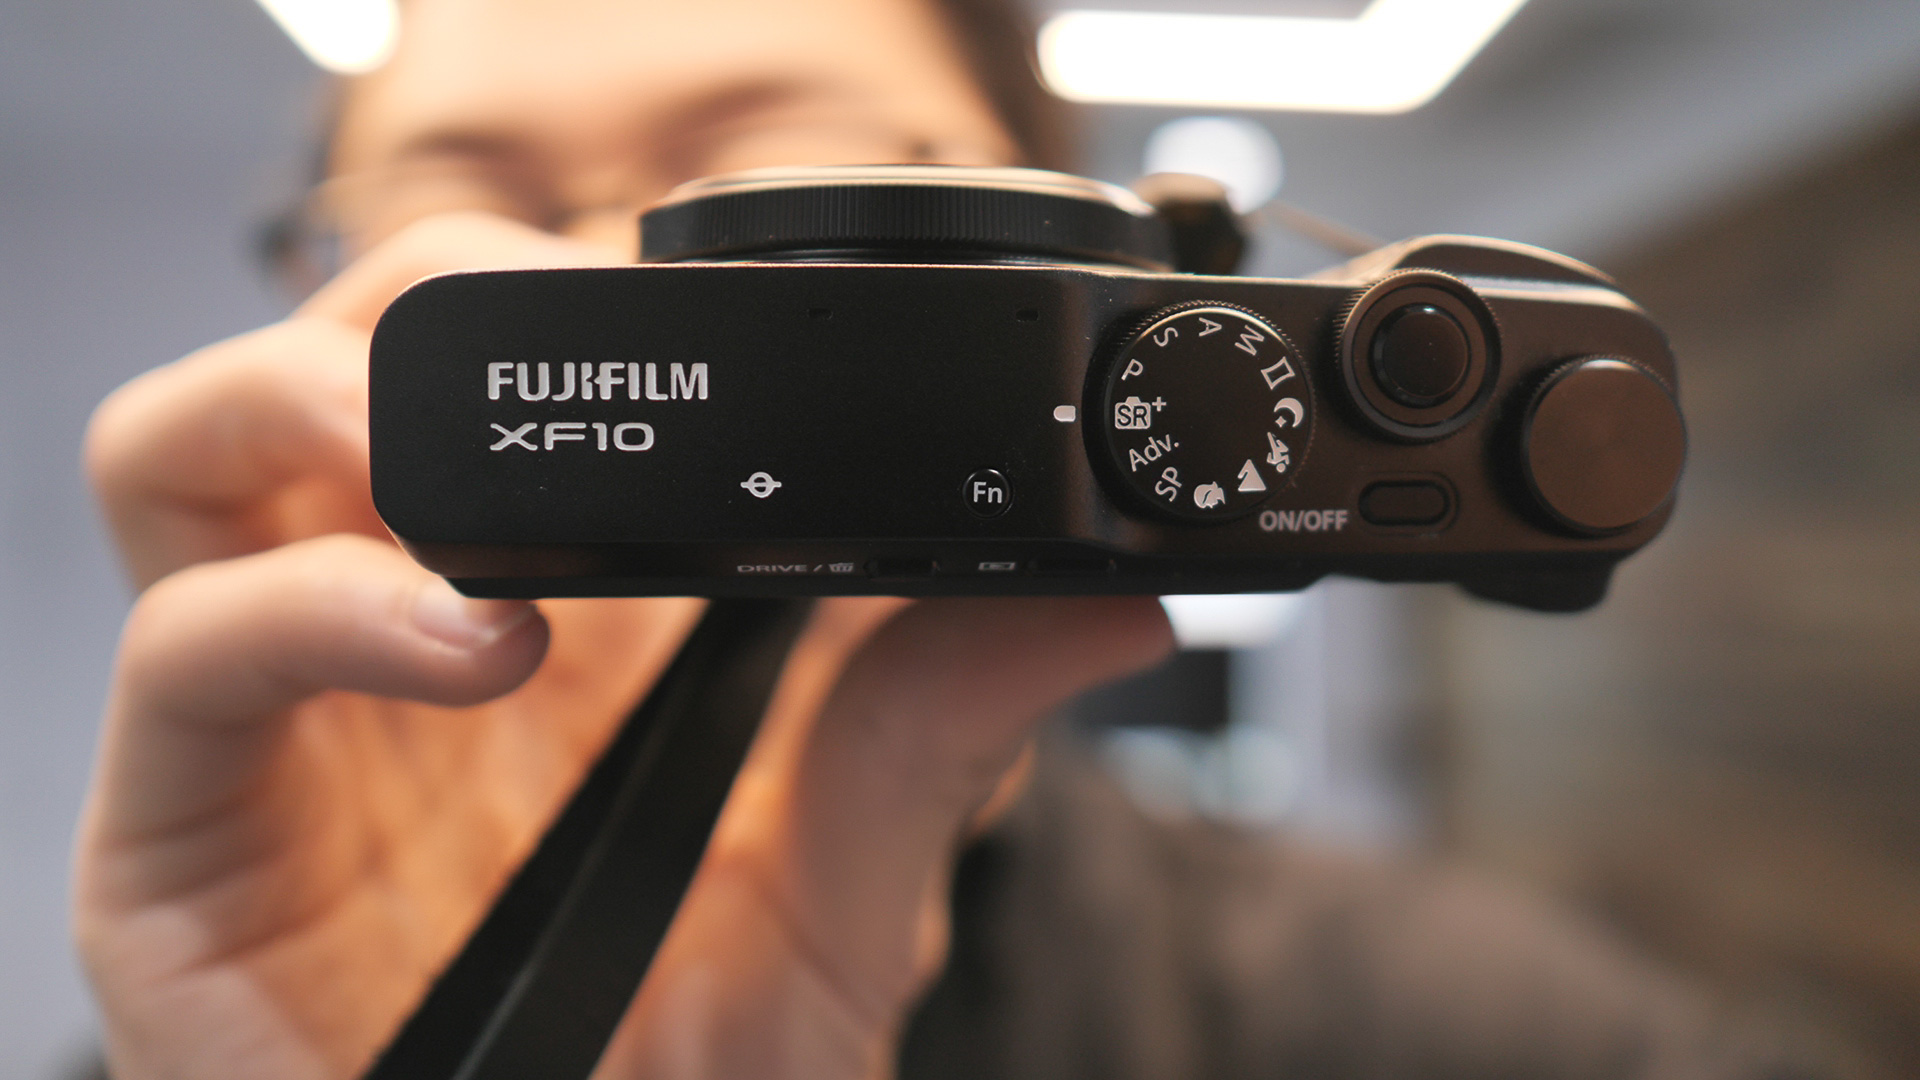 Review of SR+ Mode on Fujifilm XF10